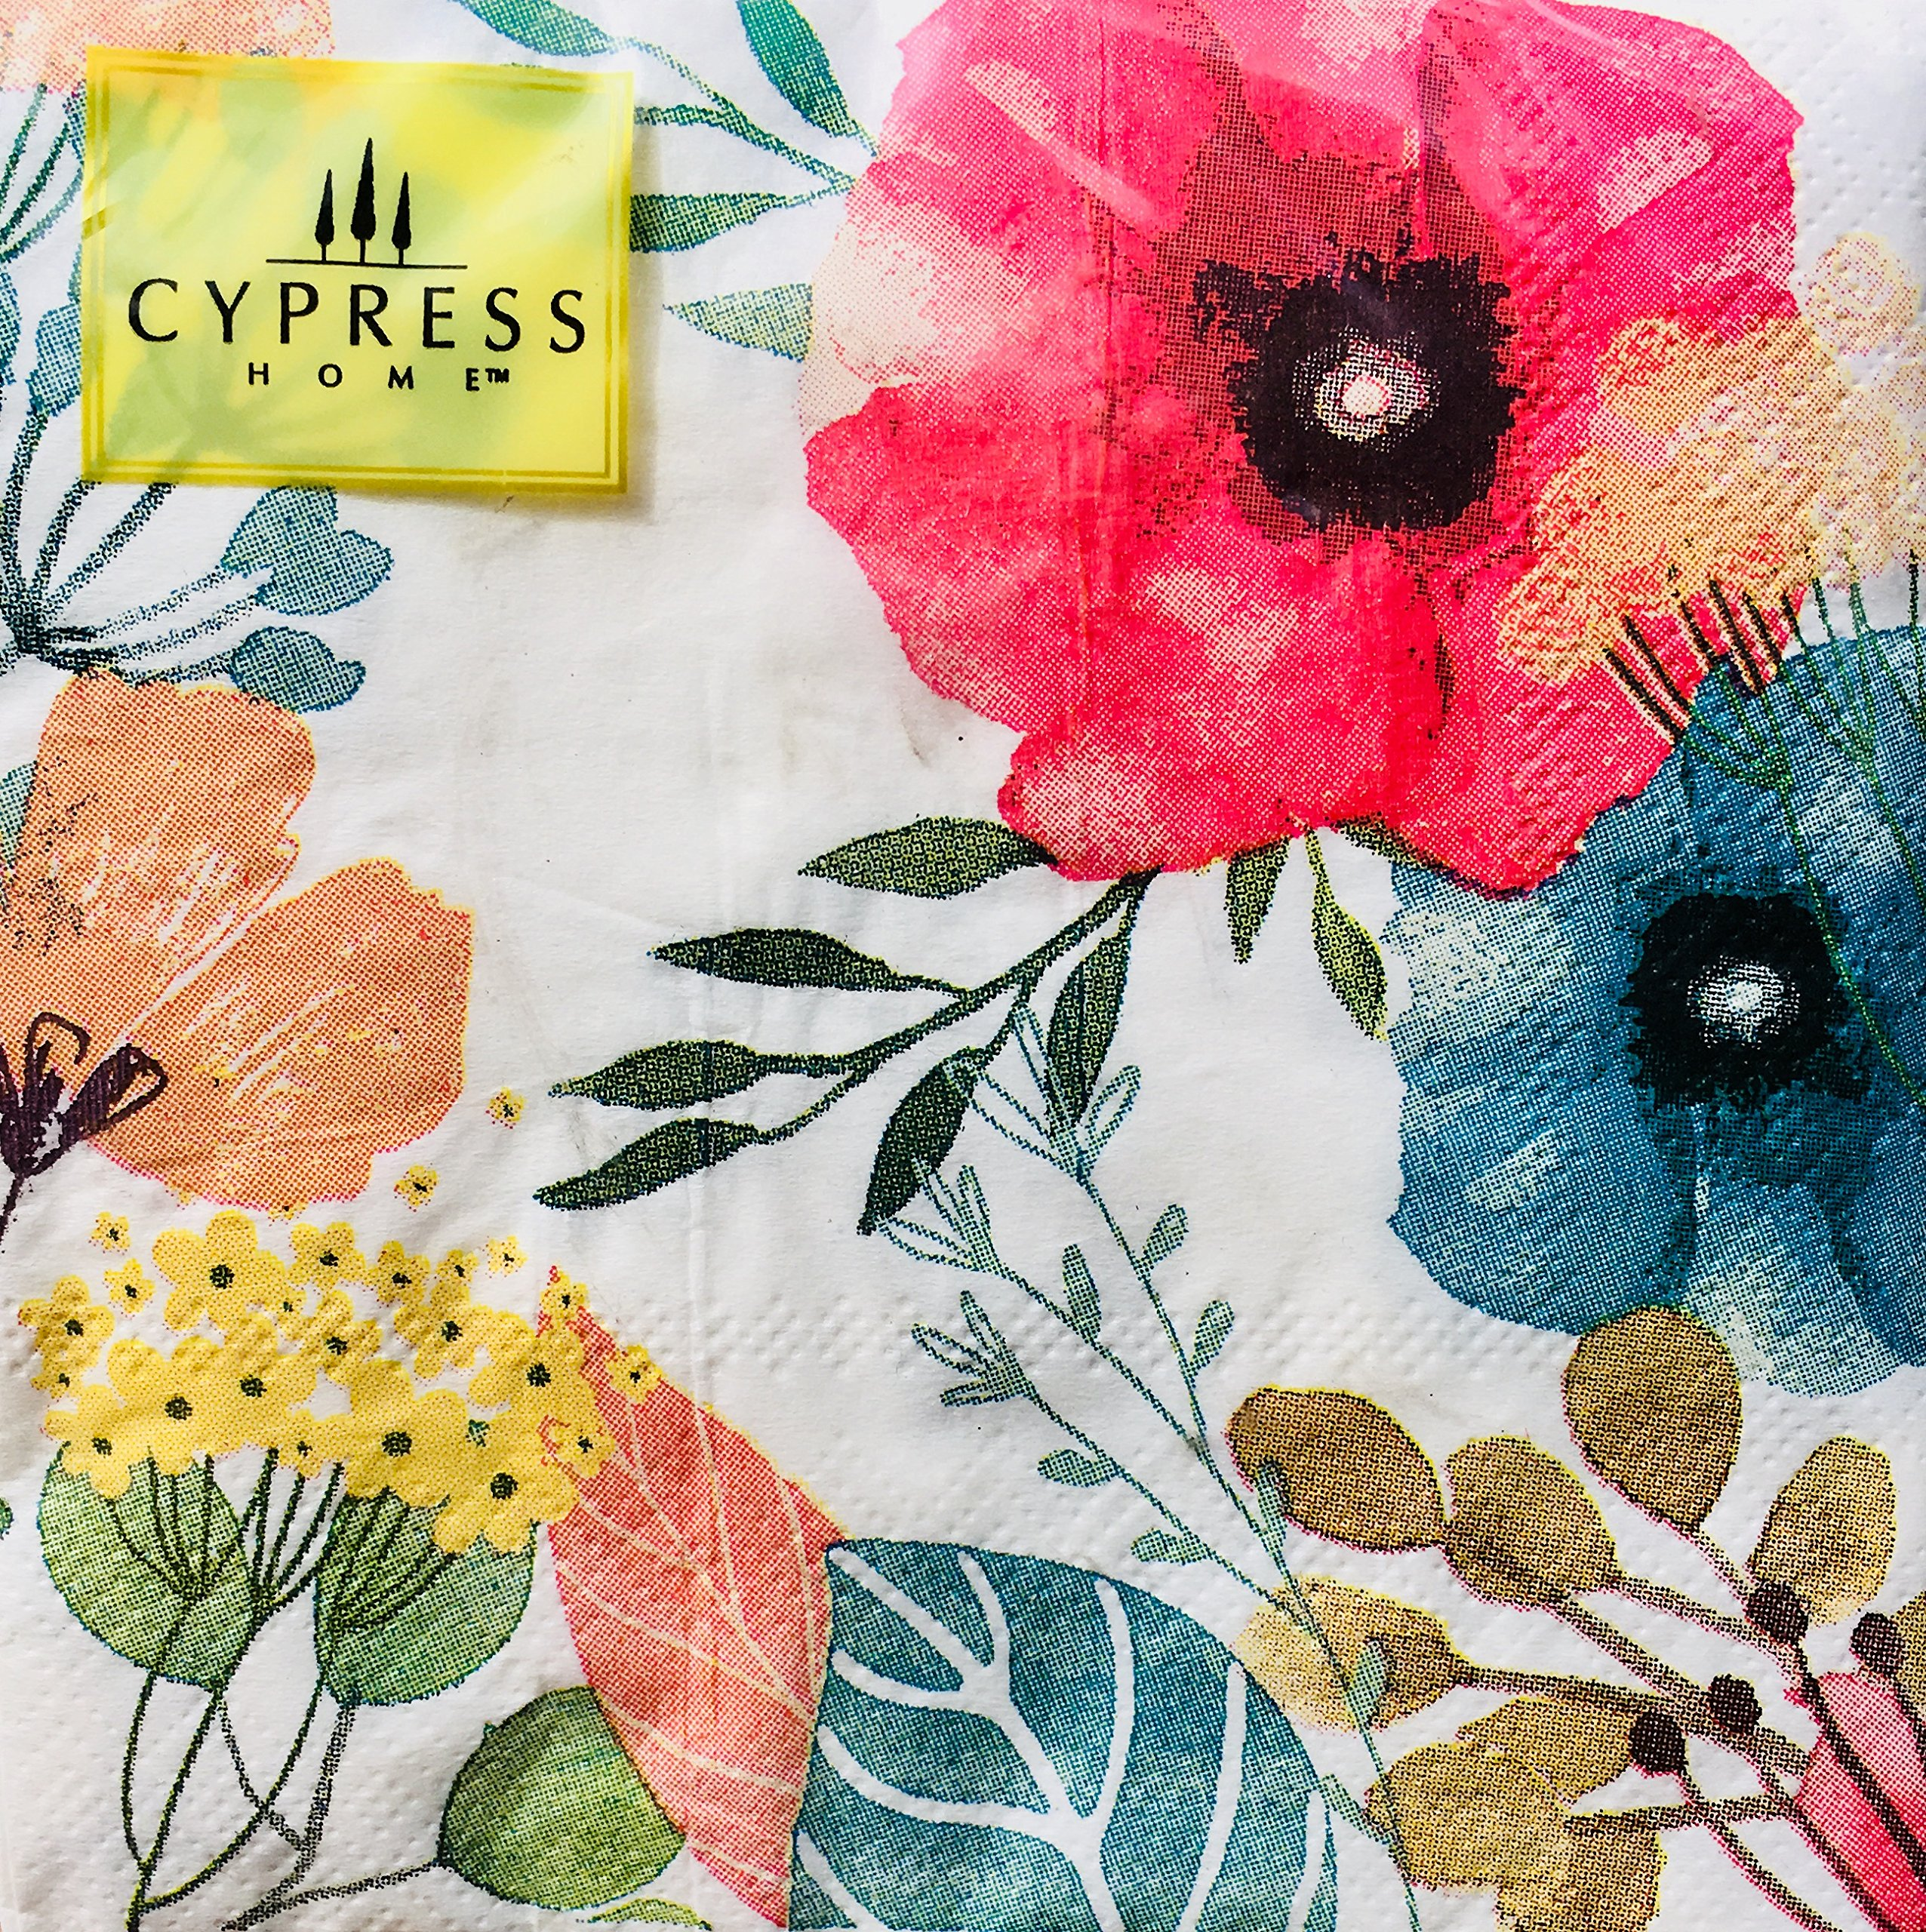 Cypress Home Watercolor Poppies IV Cocktail Beverage Paper Napkins, 40-ct